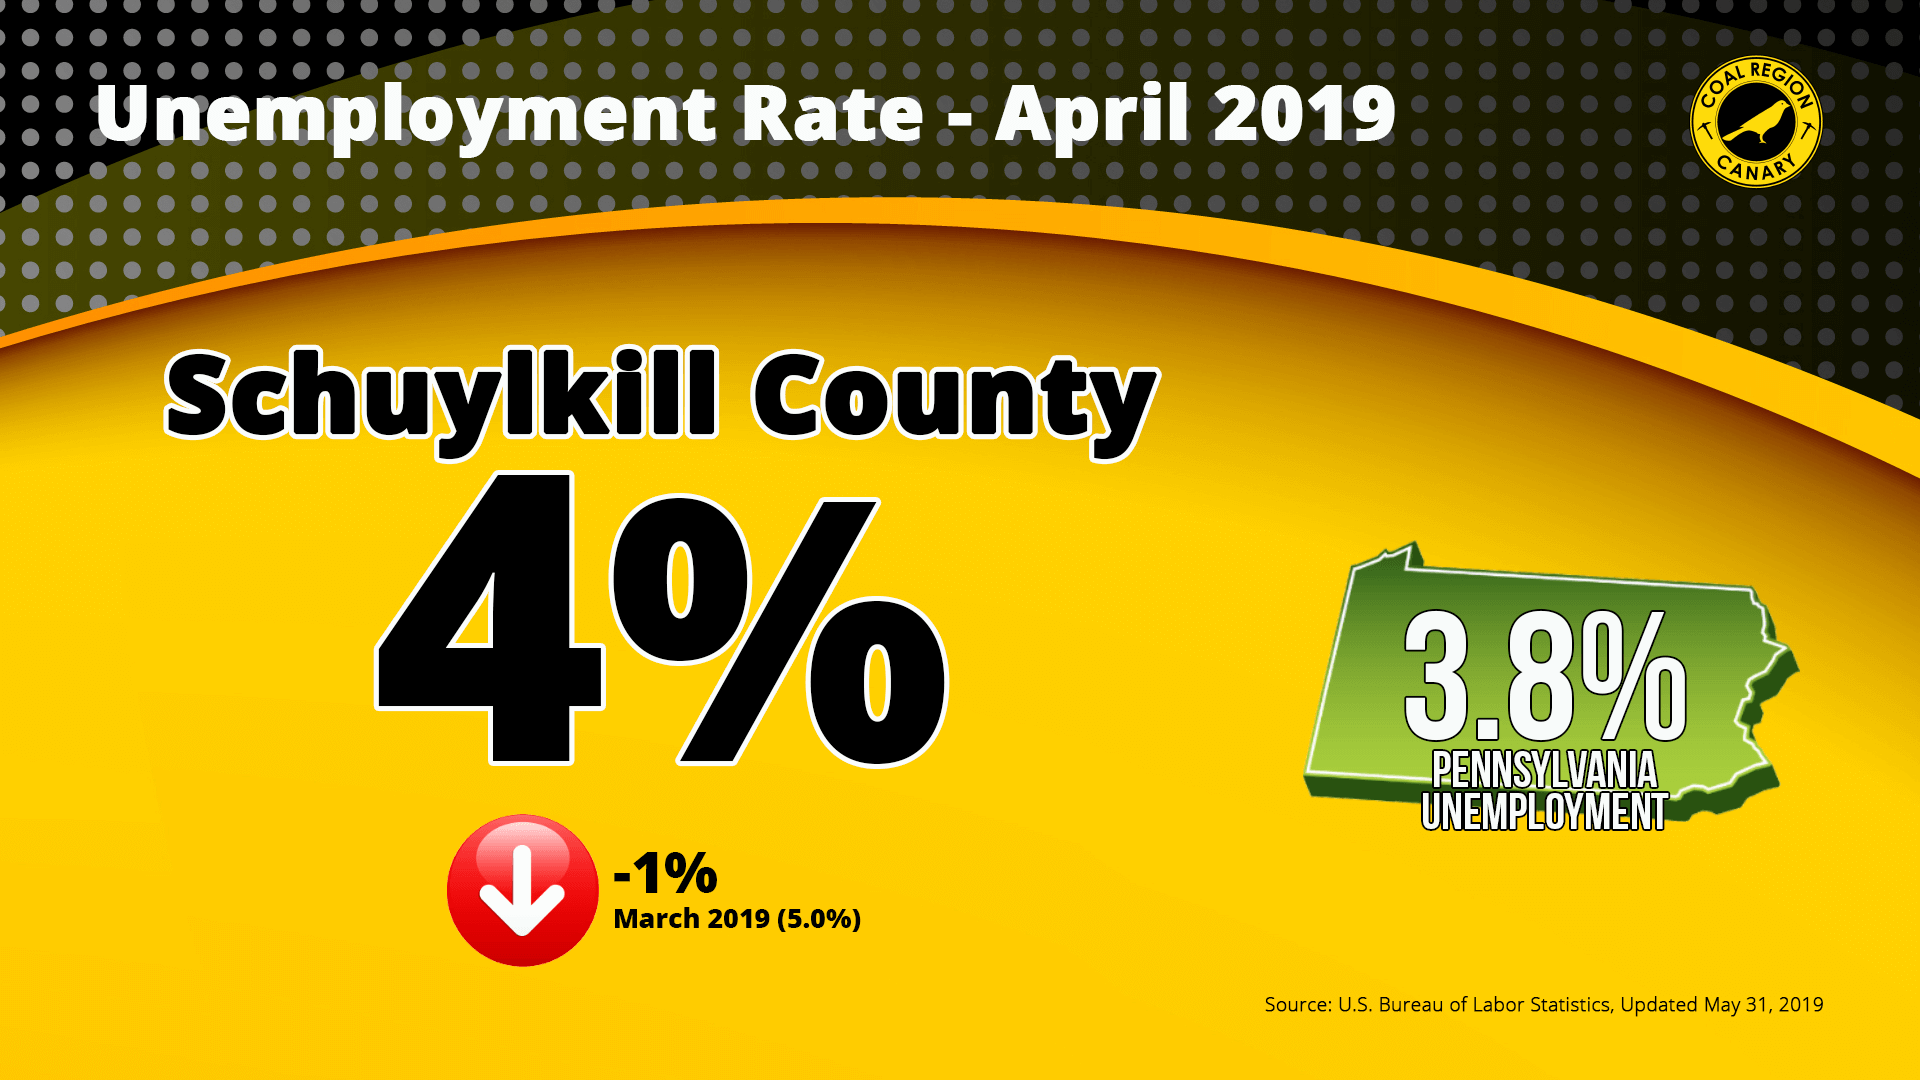 Schuylkill County unemployment rate april 2019